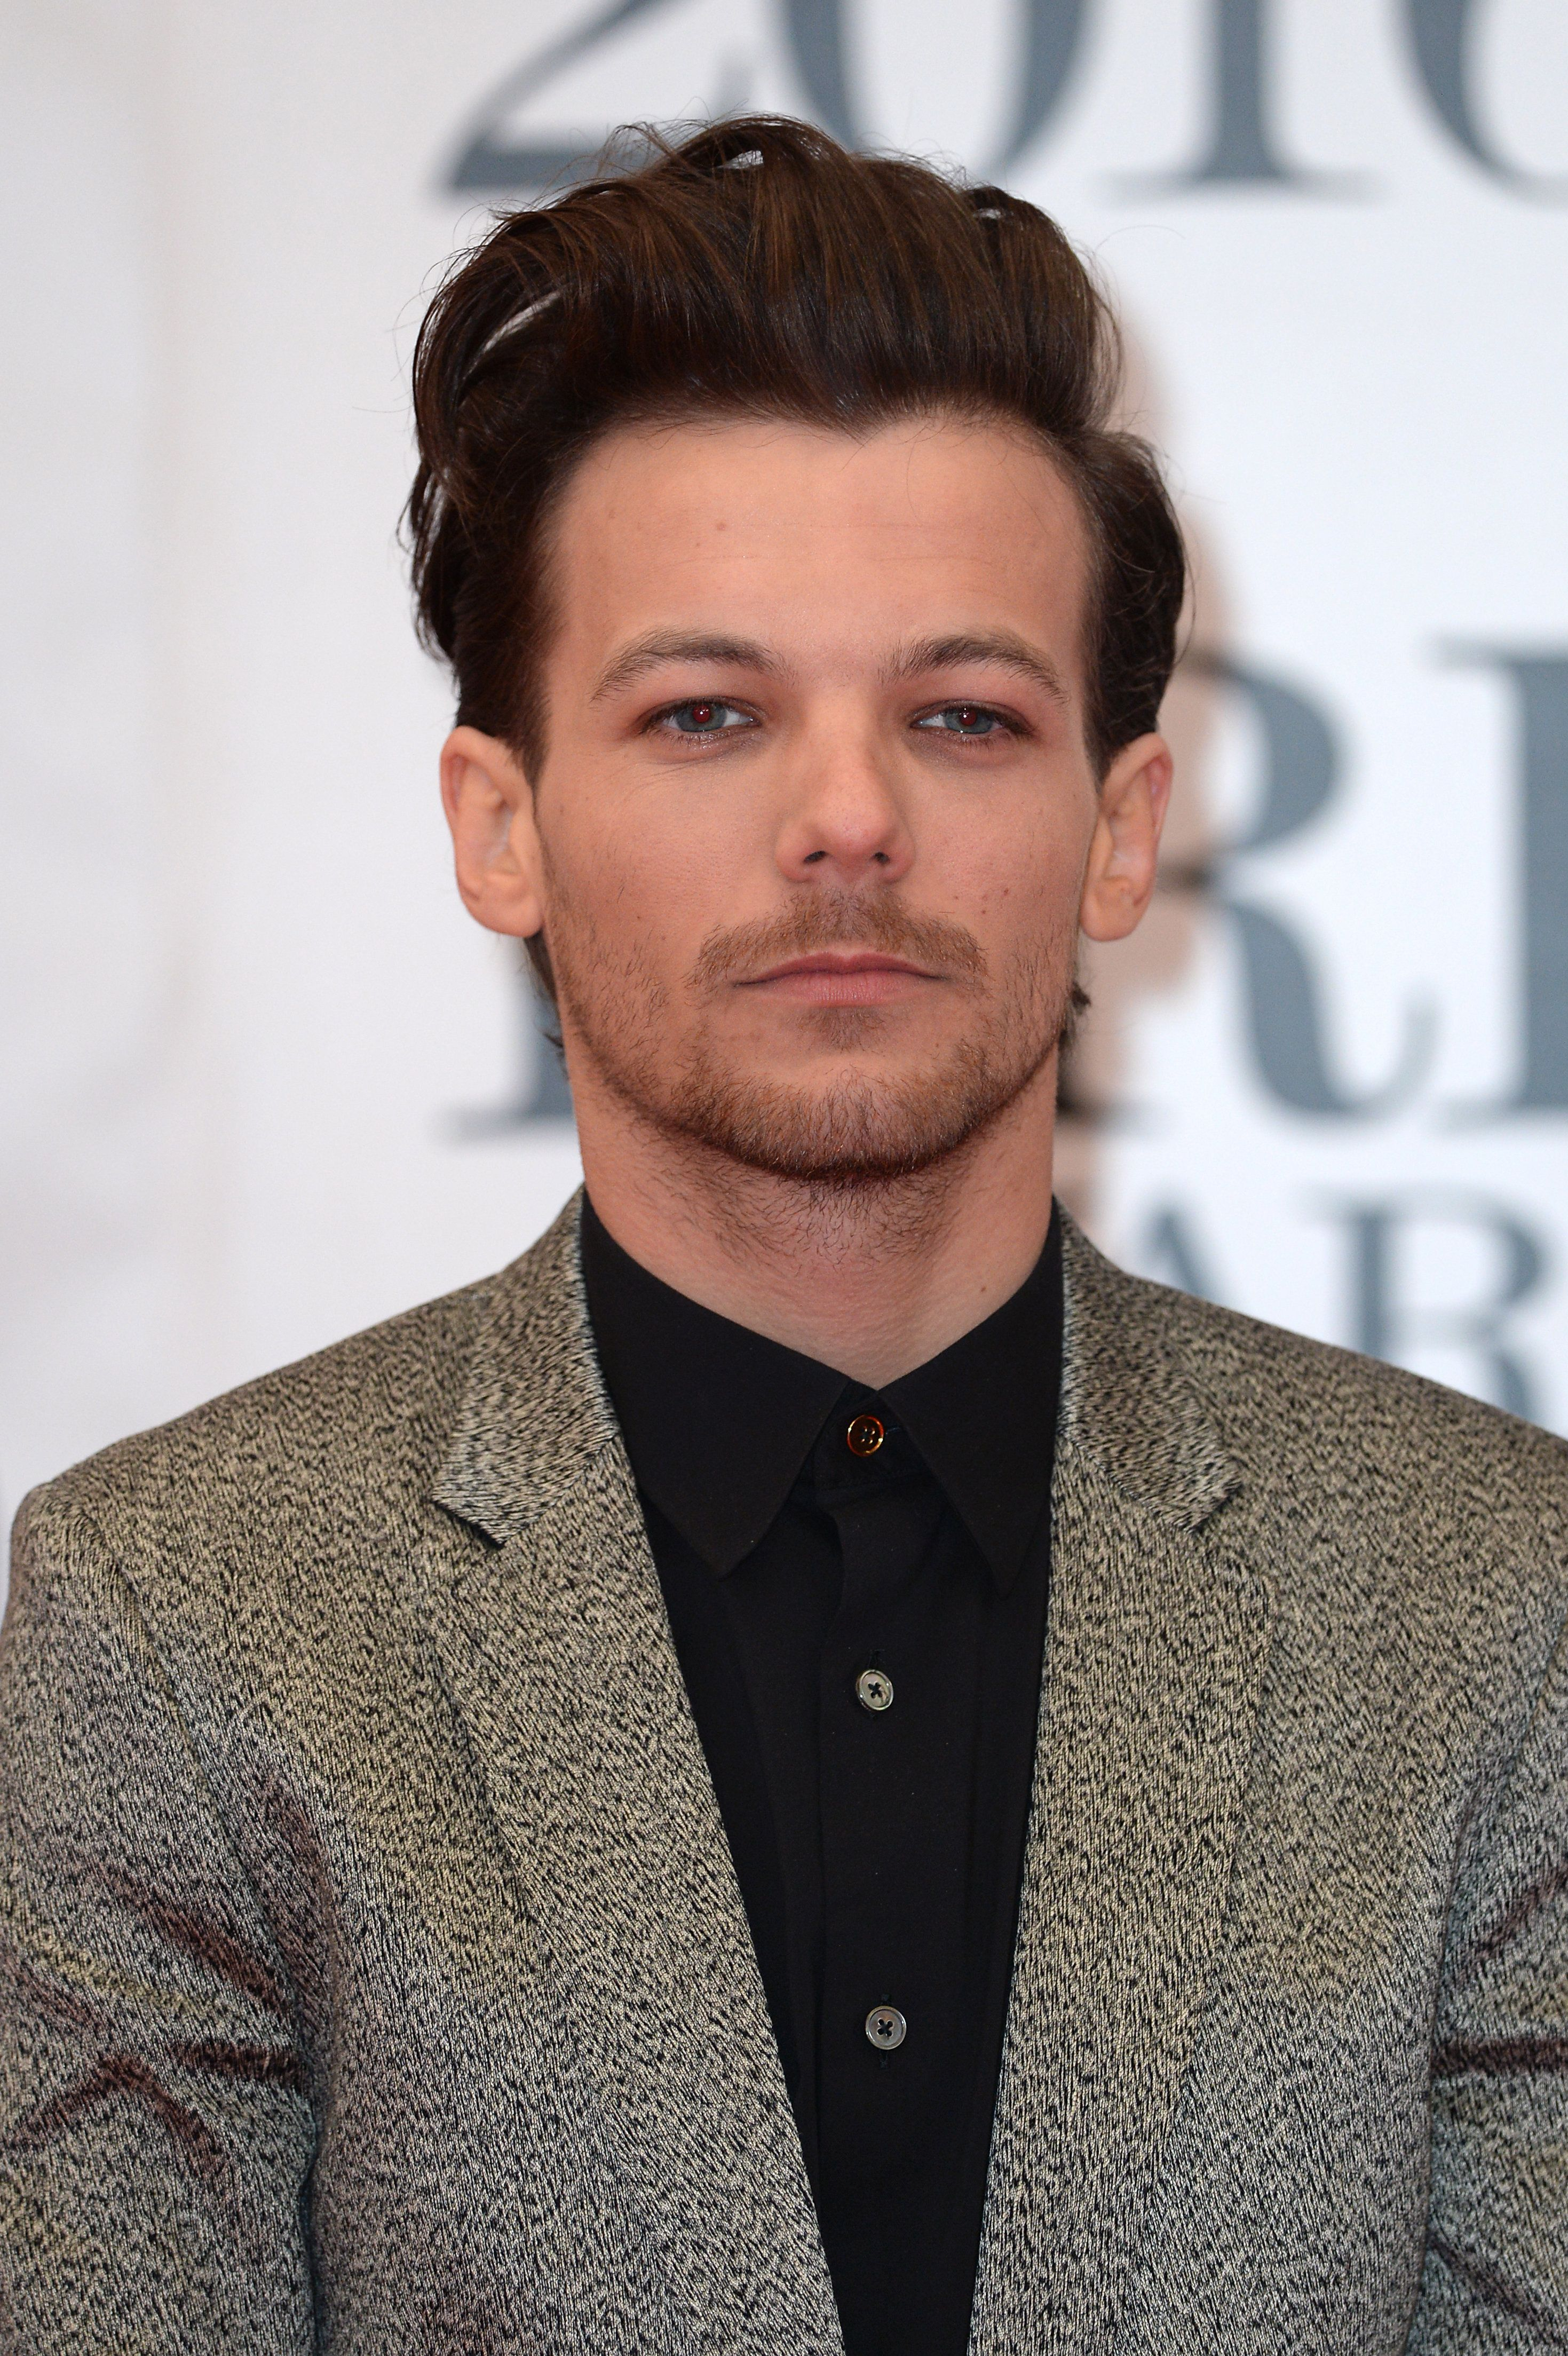 Louis Tomlinson might not be joining 'The X Factor' after